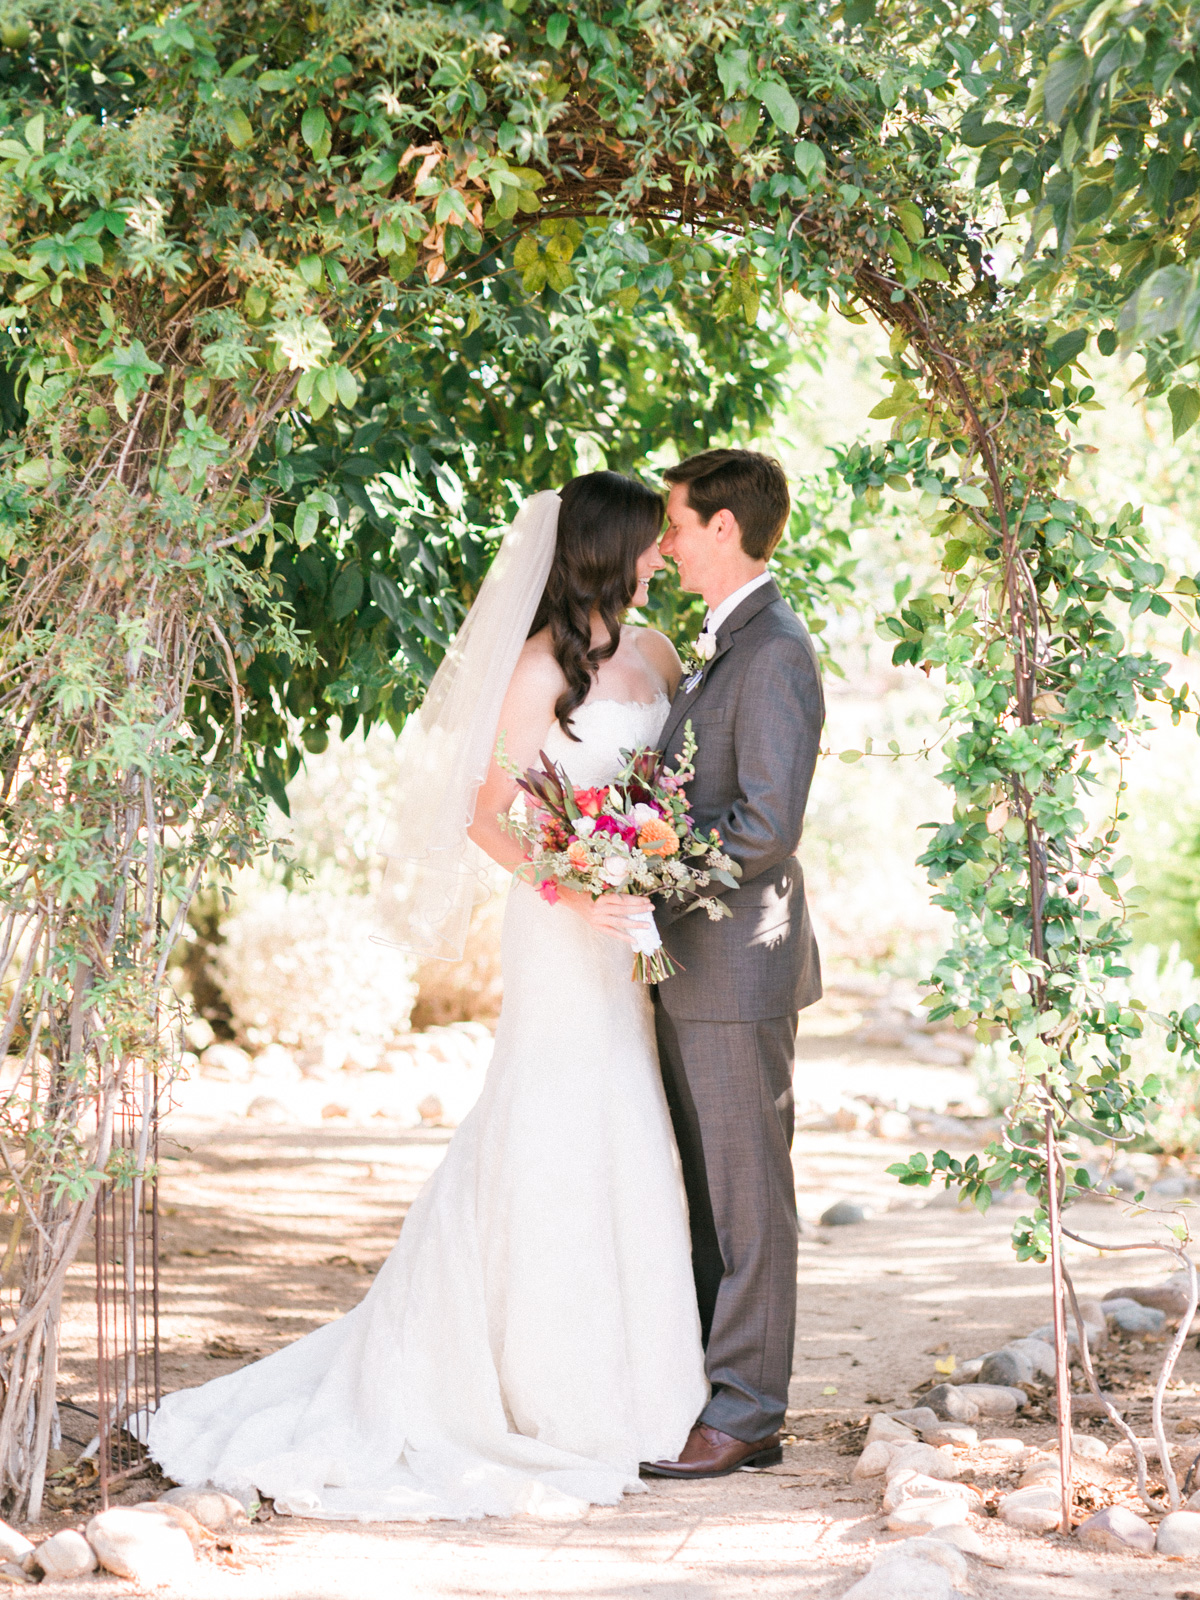 Adorable couple captured by Phoenix wedding photographers, Betsy & John